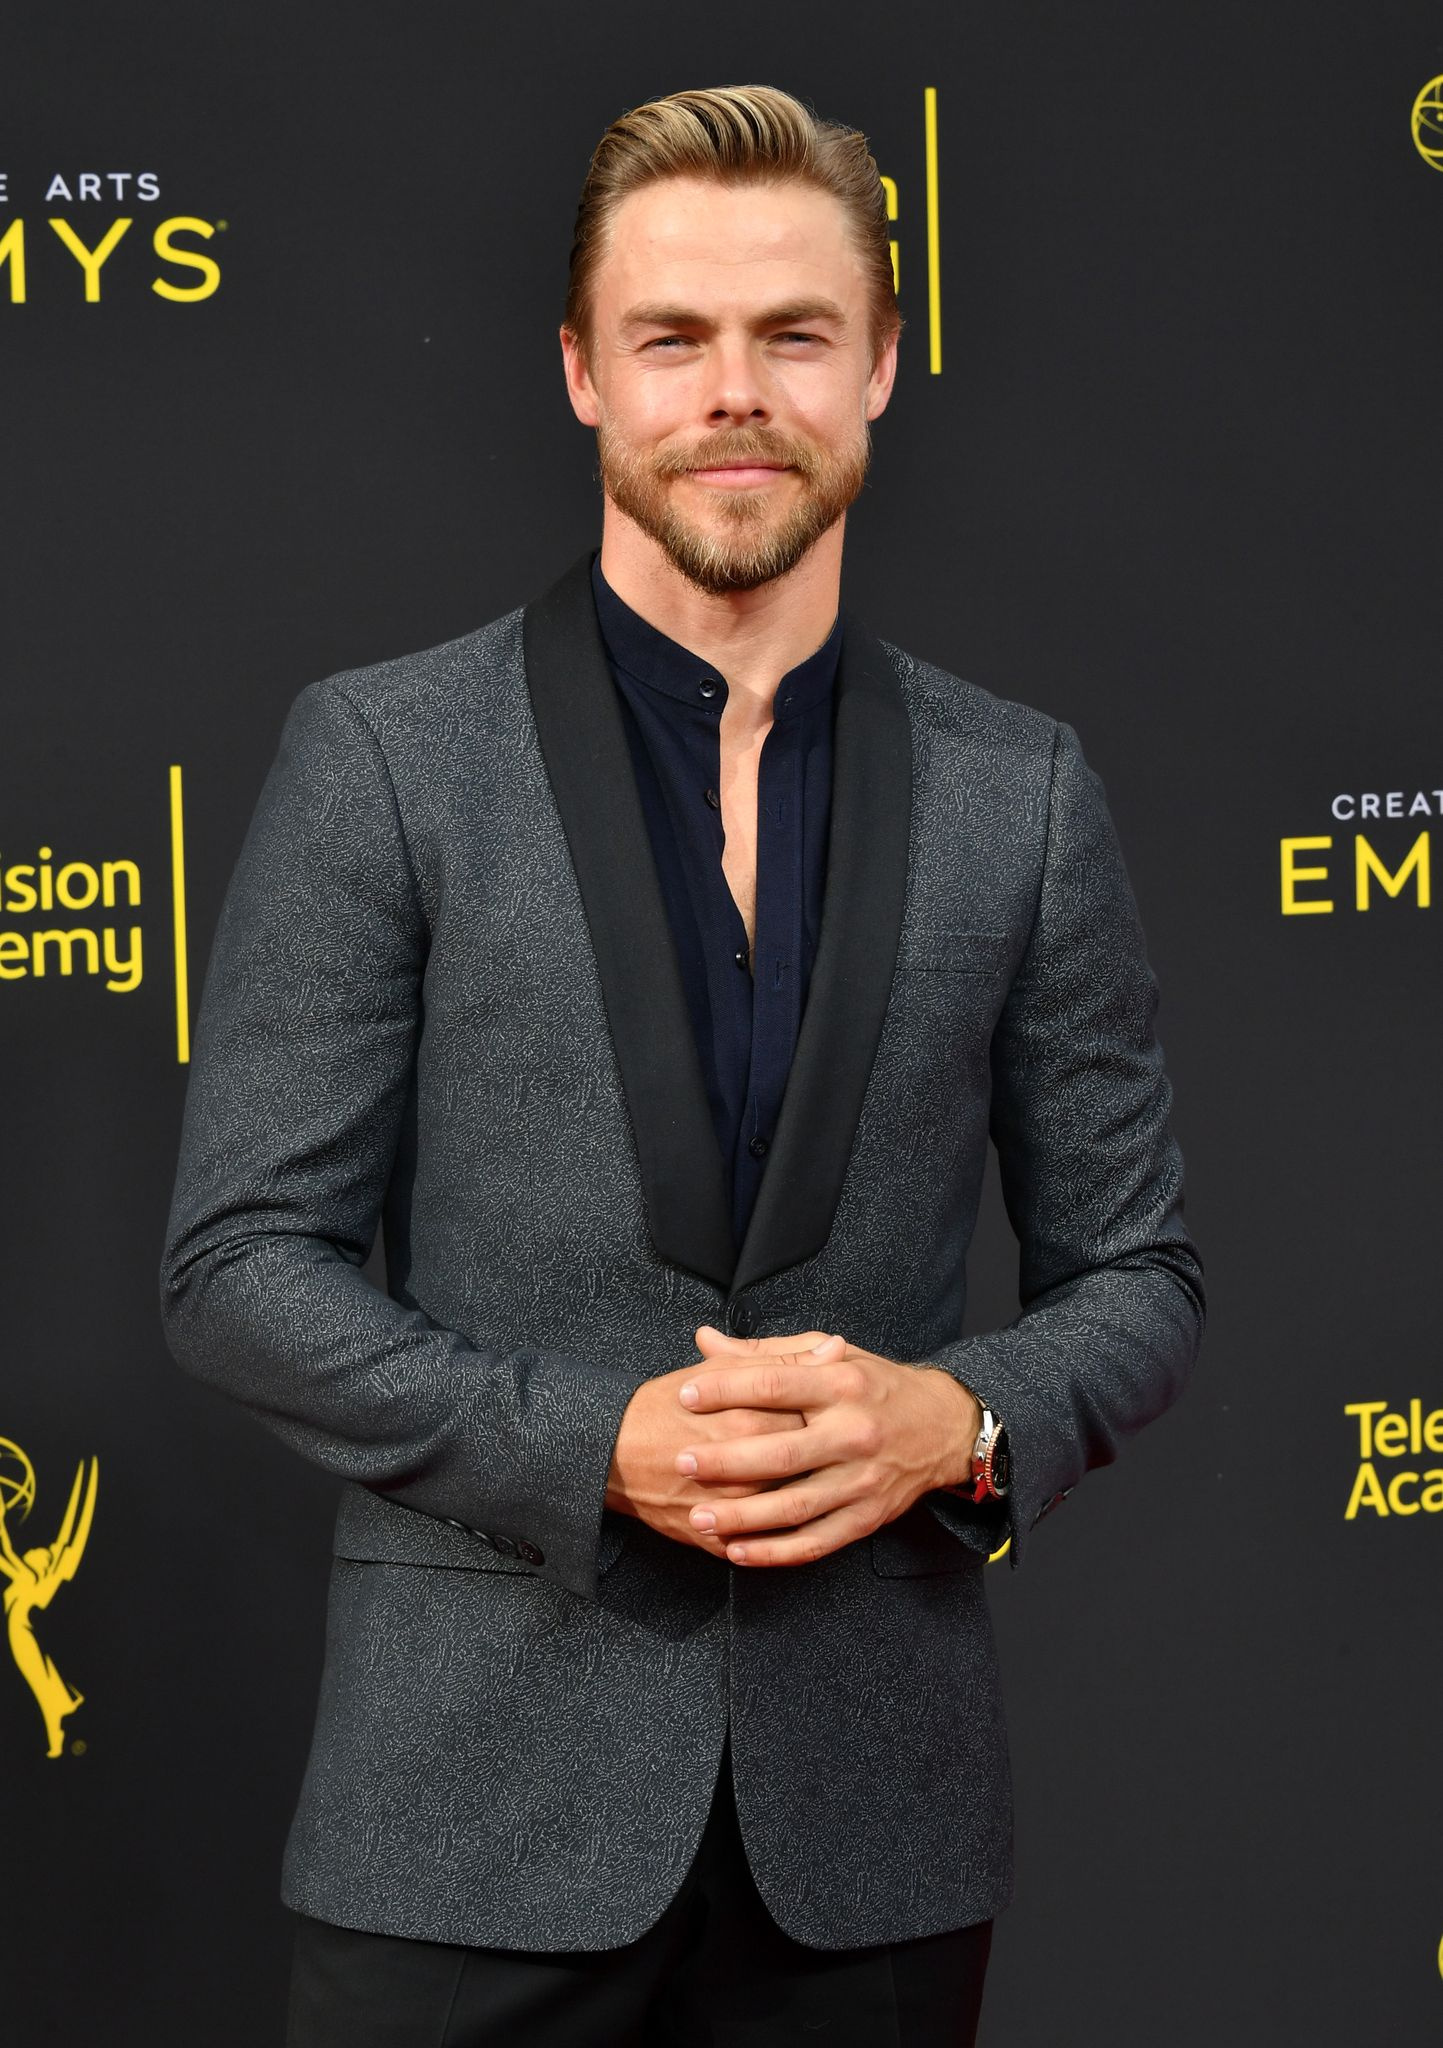 Derek Hough on September 14, 2019 in Los Angeles, California. | Photo: Getty Images